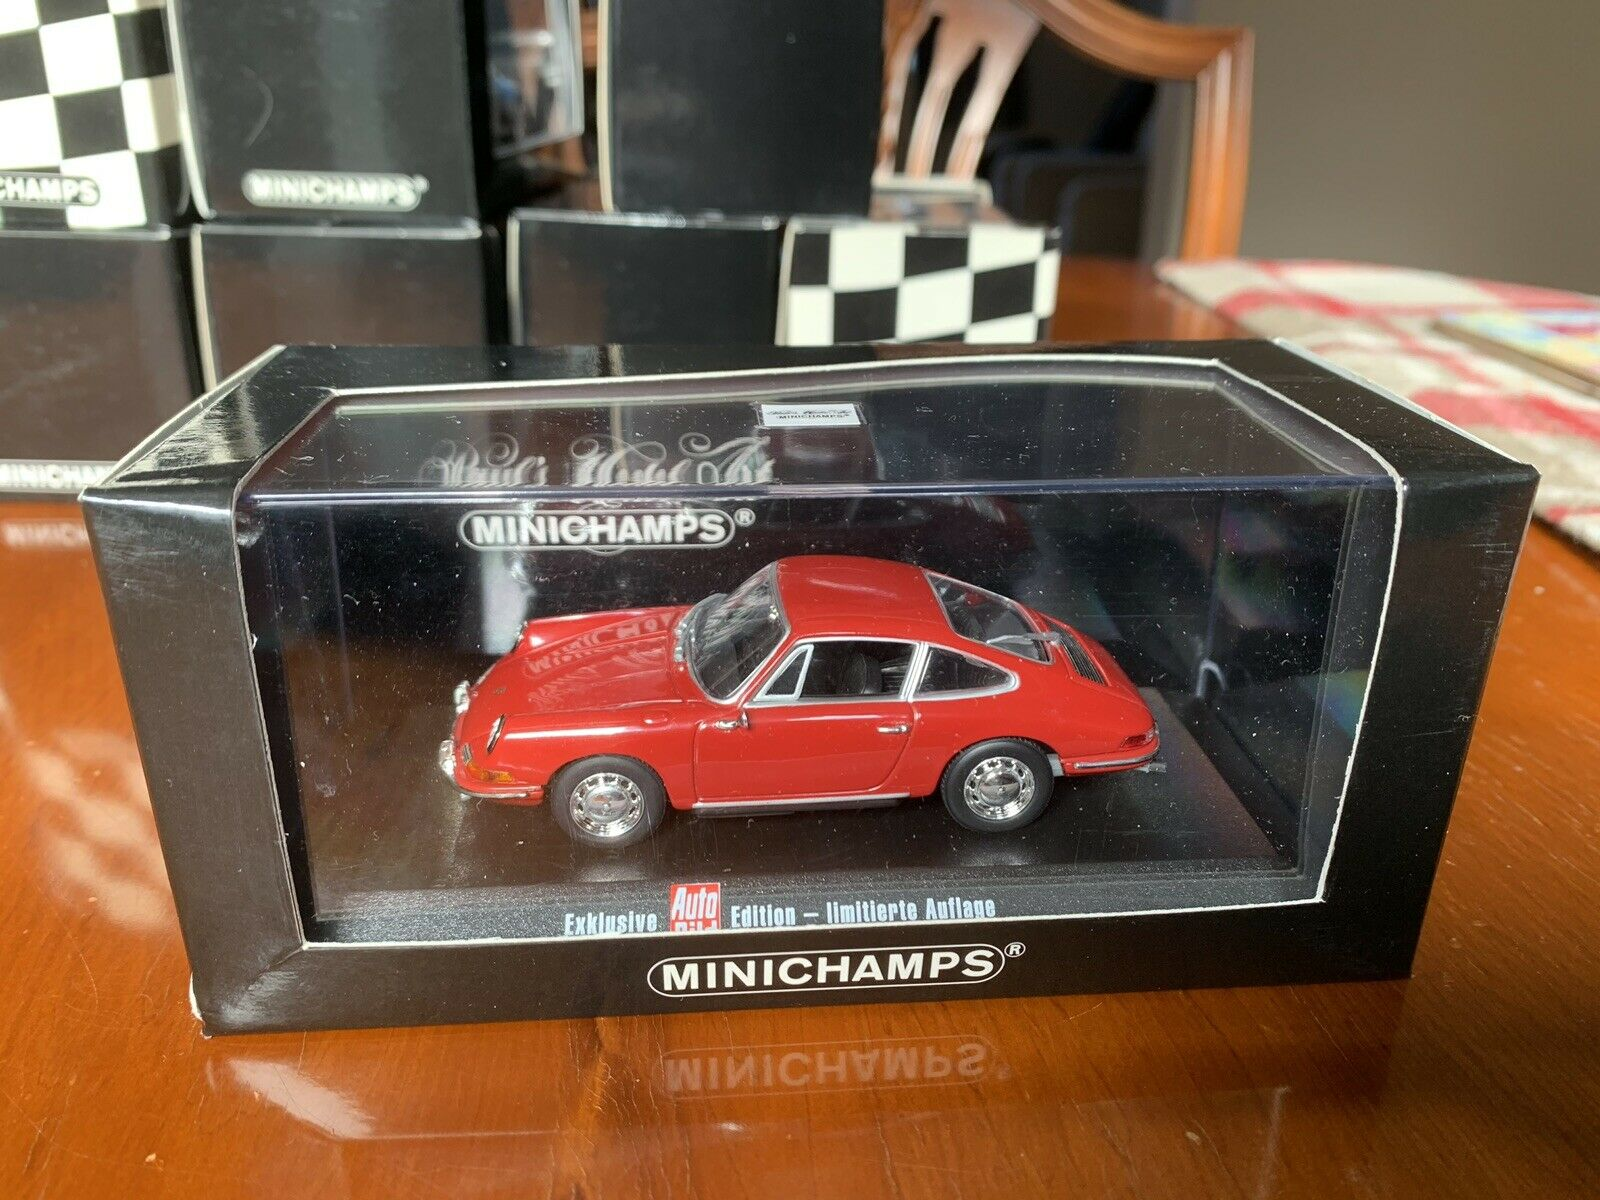 Minichamps Porsche 911 For 1964. Exclusive Auto Bild Edition. 1 43 Diecast.